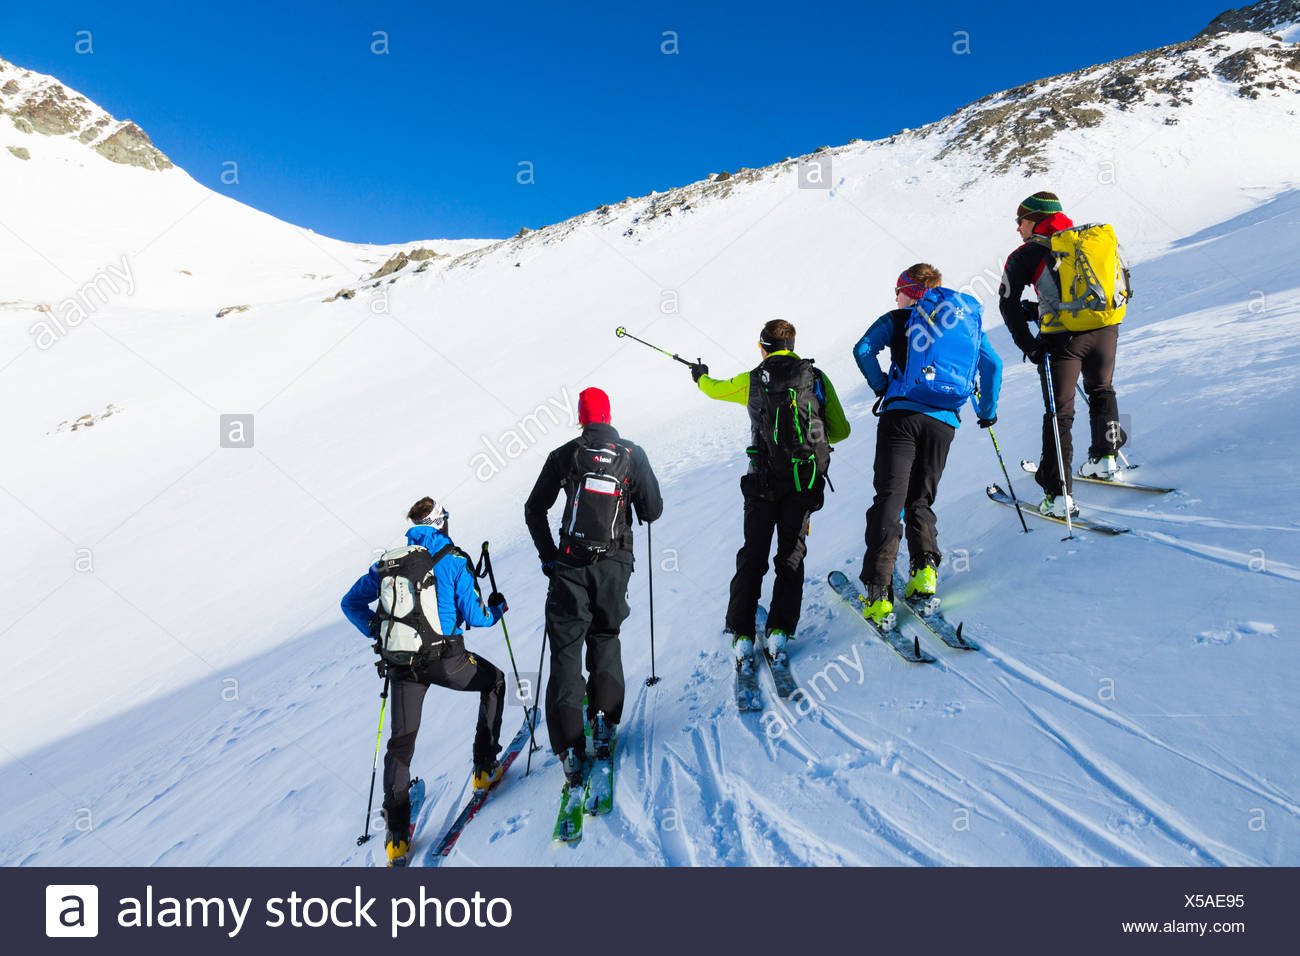 Mountain Guide ski touring with a group, avalanche assessment on a ski tour, risk management with groups, Heidelberger gap, Silvretta, Tirol, Austria Stock Photo